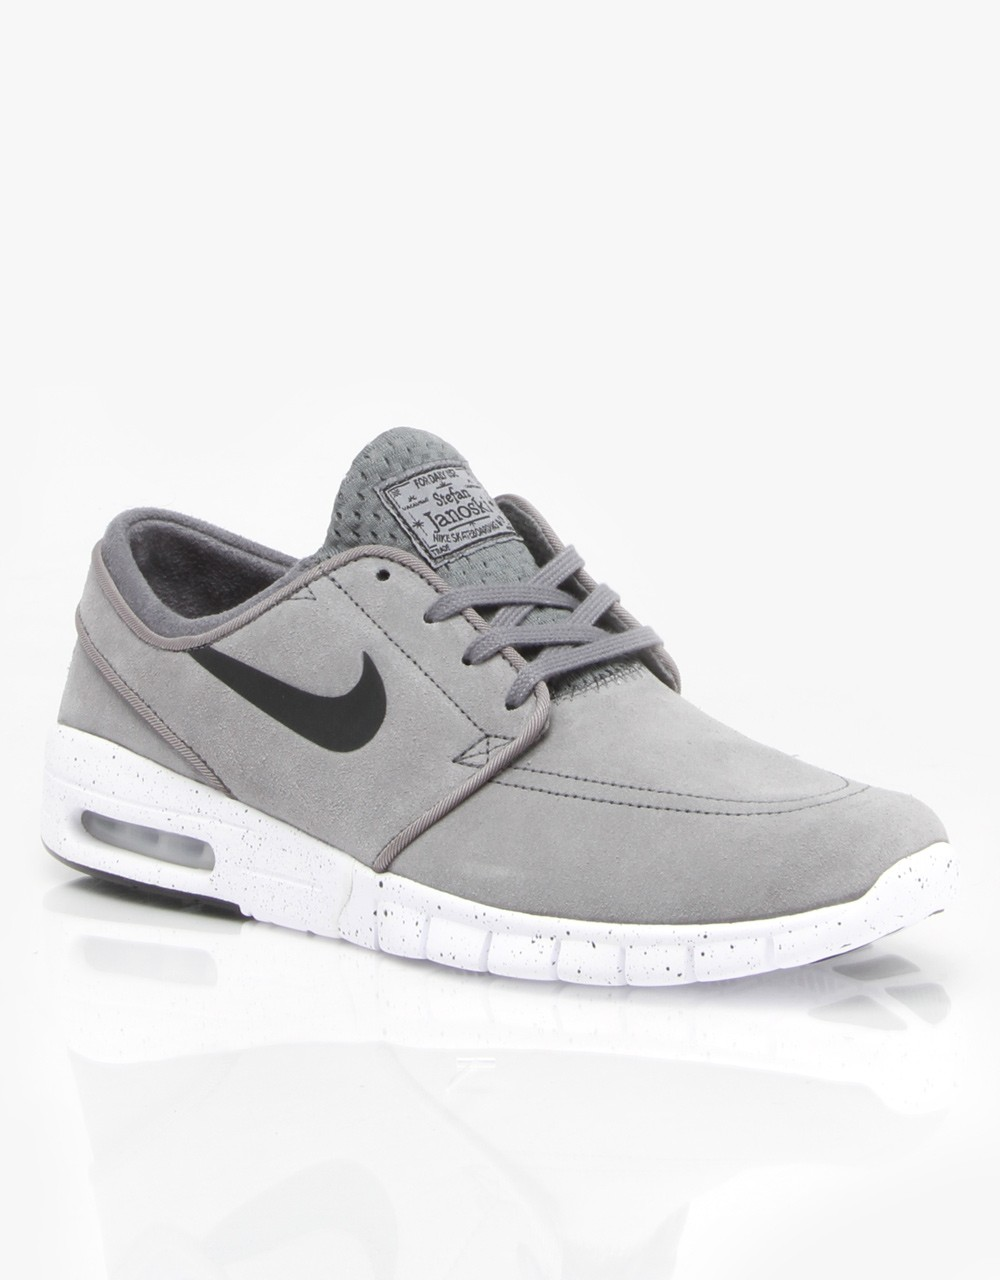 Nike SB Stefan Janoski Max Suede Cool Grey Black White Shoe